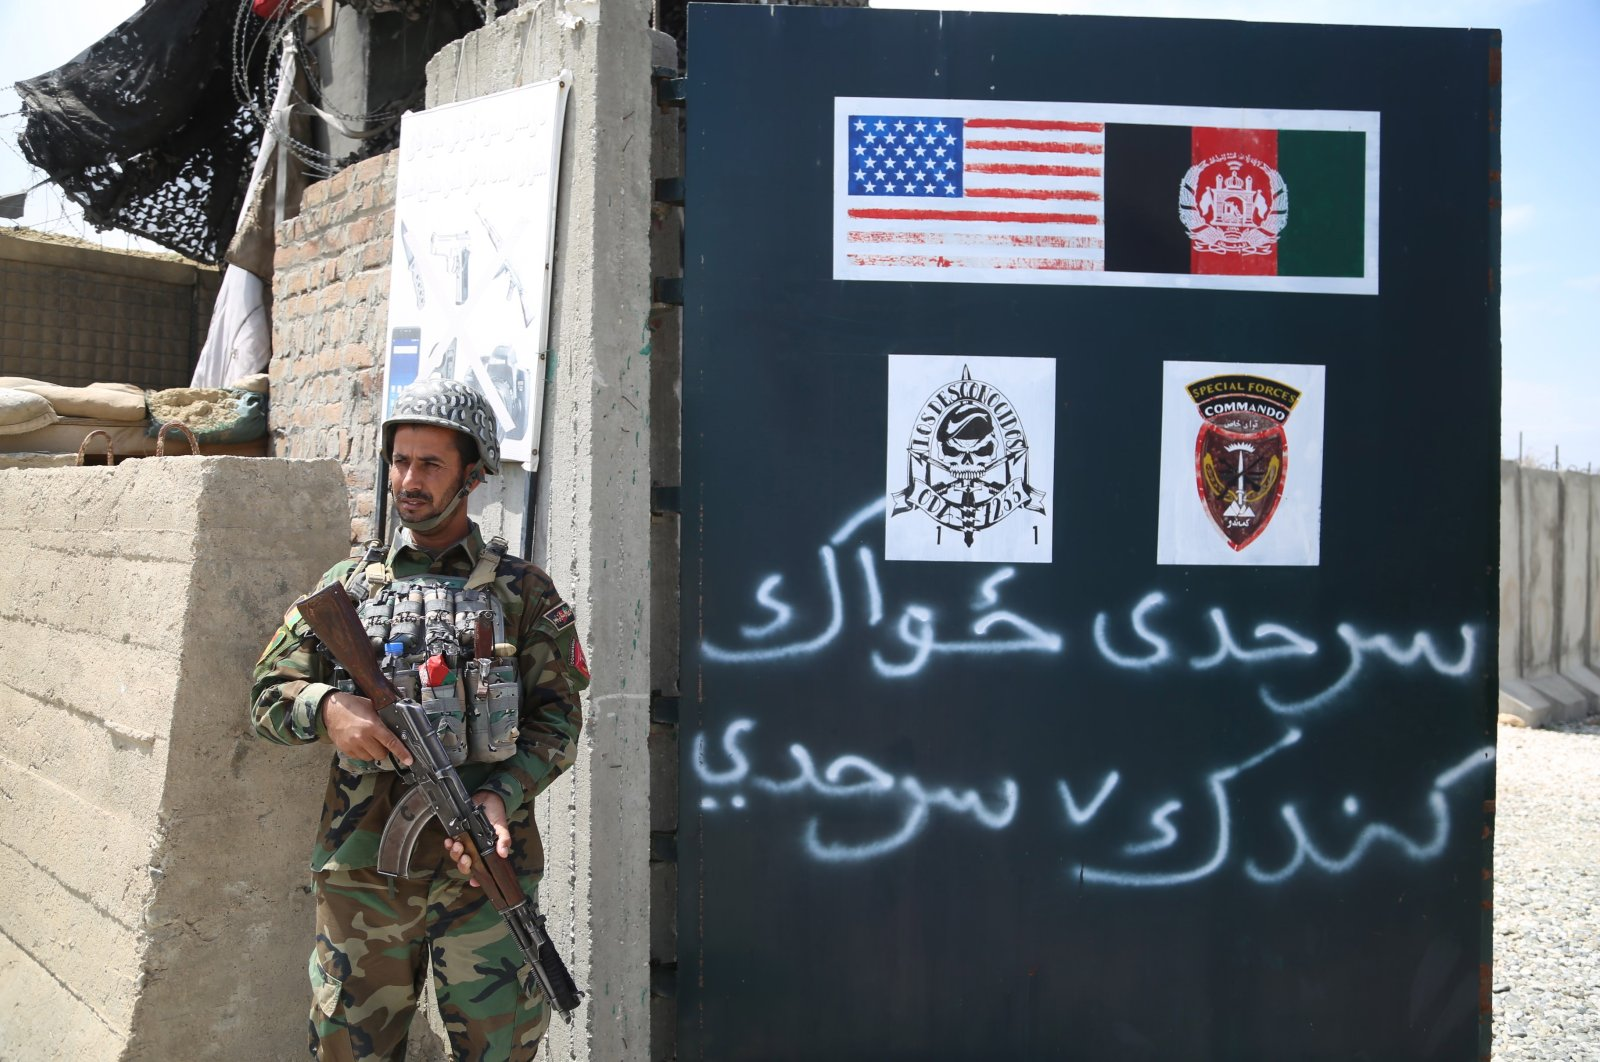 An Afghan Army soldier stands guard outside a military base that was previously in use by the U.S. soldiers, in Haska Meyna district of Nangarhar province, Afghanistan, April 14, 2021. (EPA Photo)